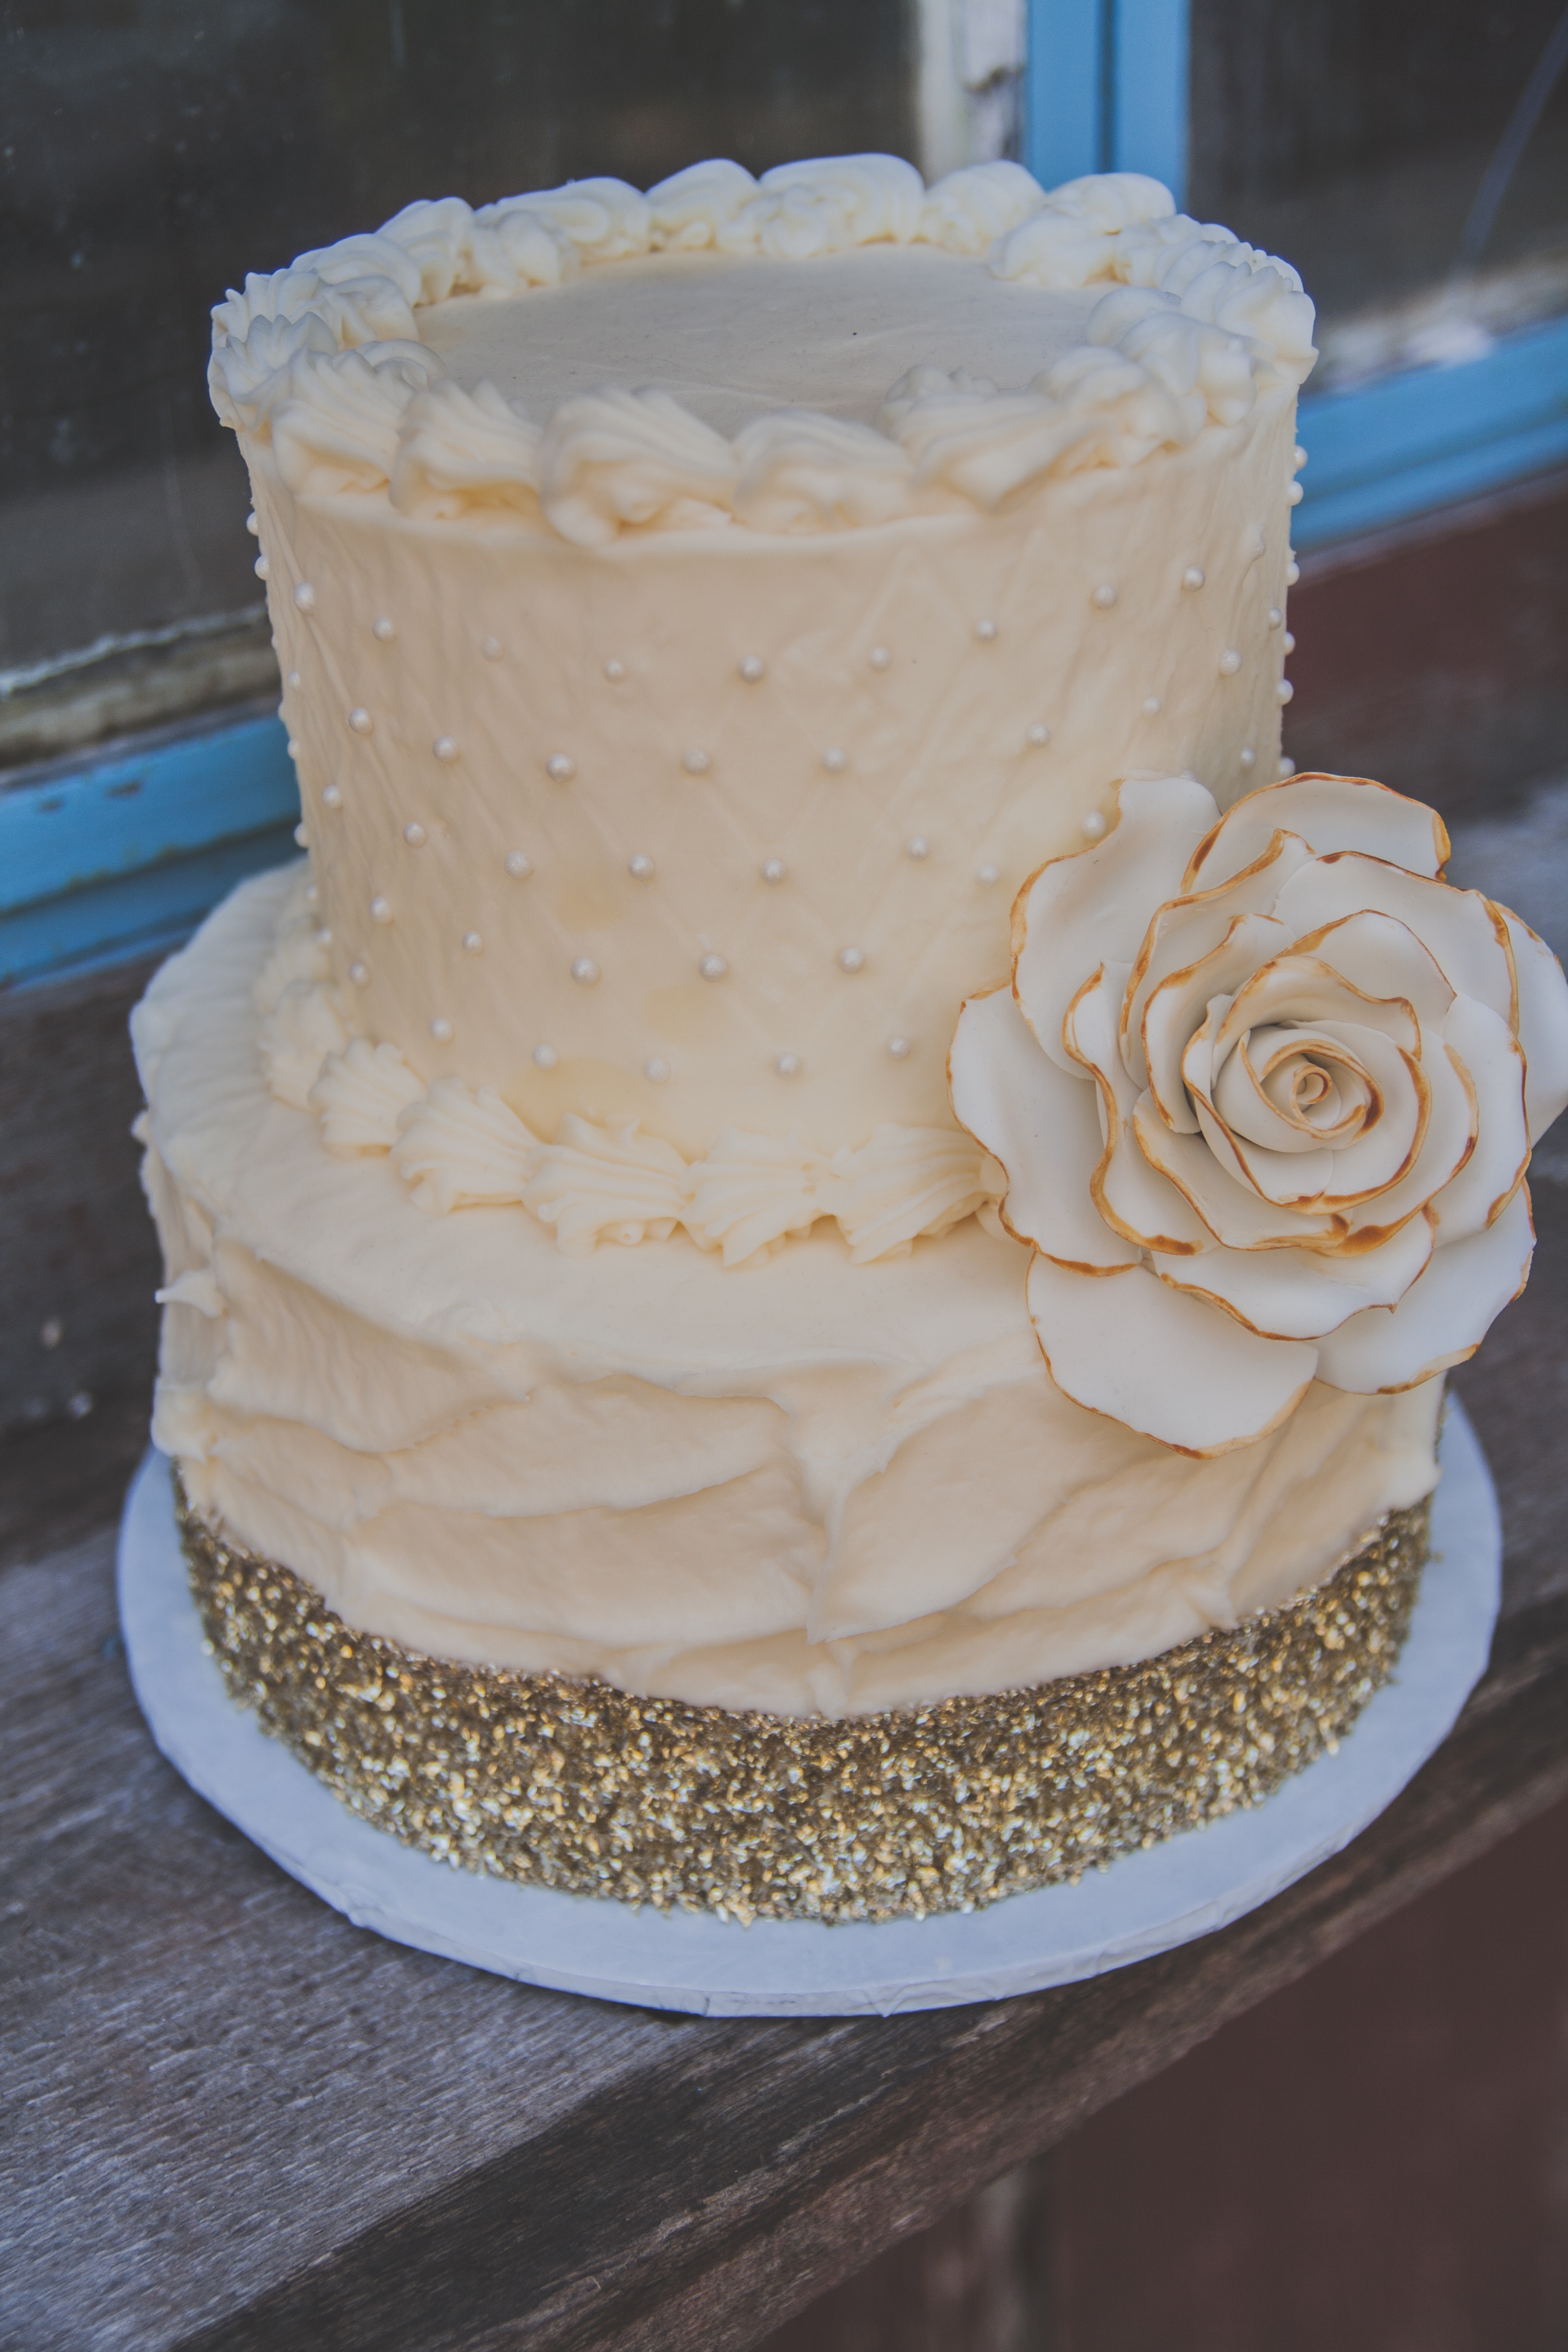 A Twotier Ivory Buttercream Cake Decorated With Sugar Pearl Polka Dots A Large Fondant Flower